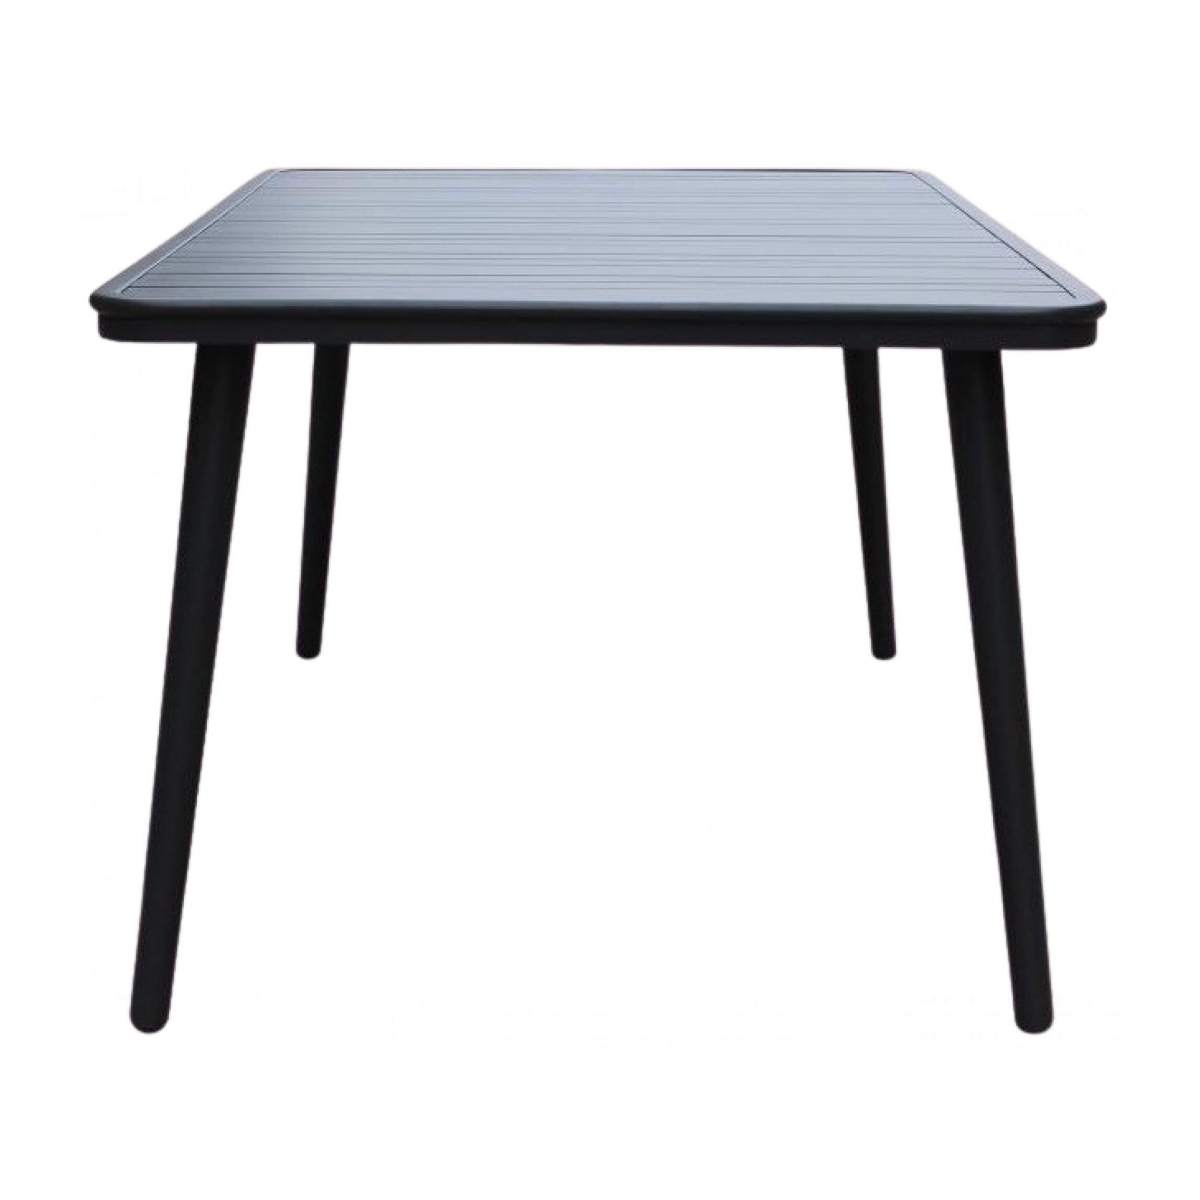 Table de jardin en aluminium - Anthracite poudré n°4